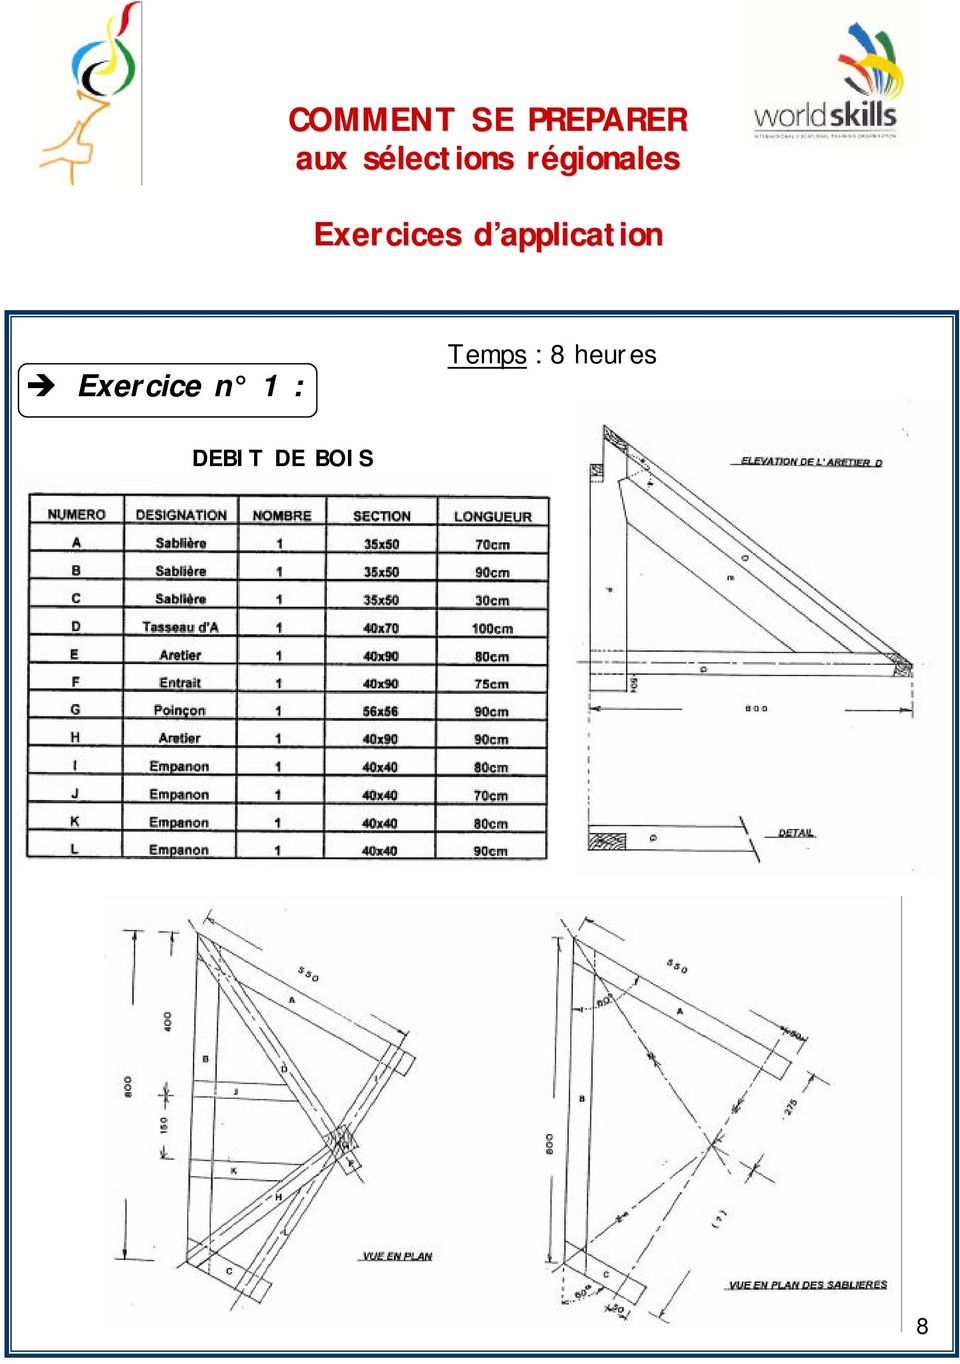 applicationd Exercice